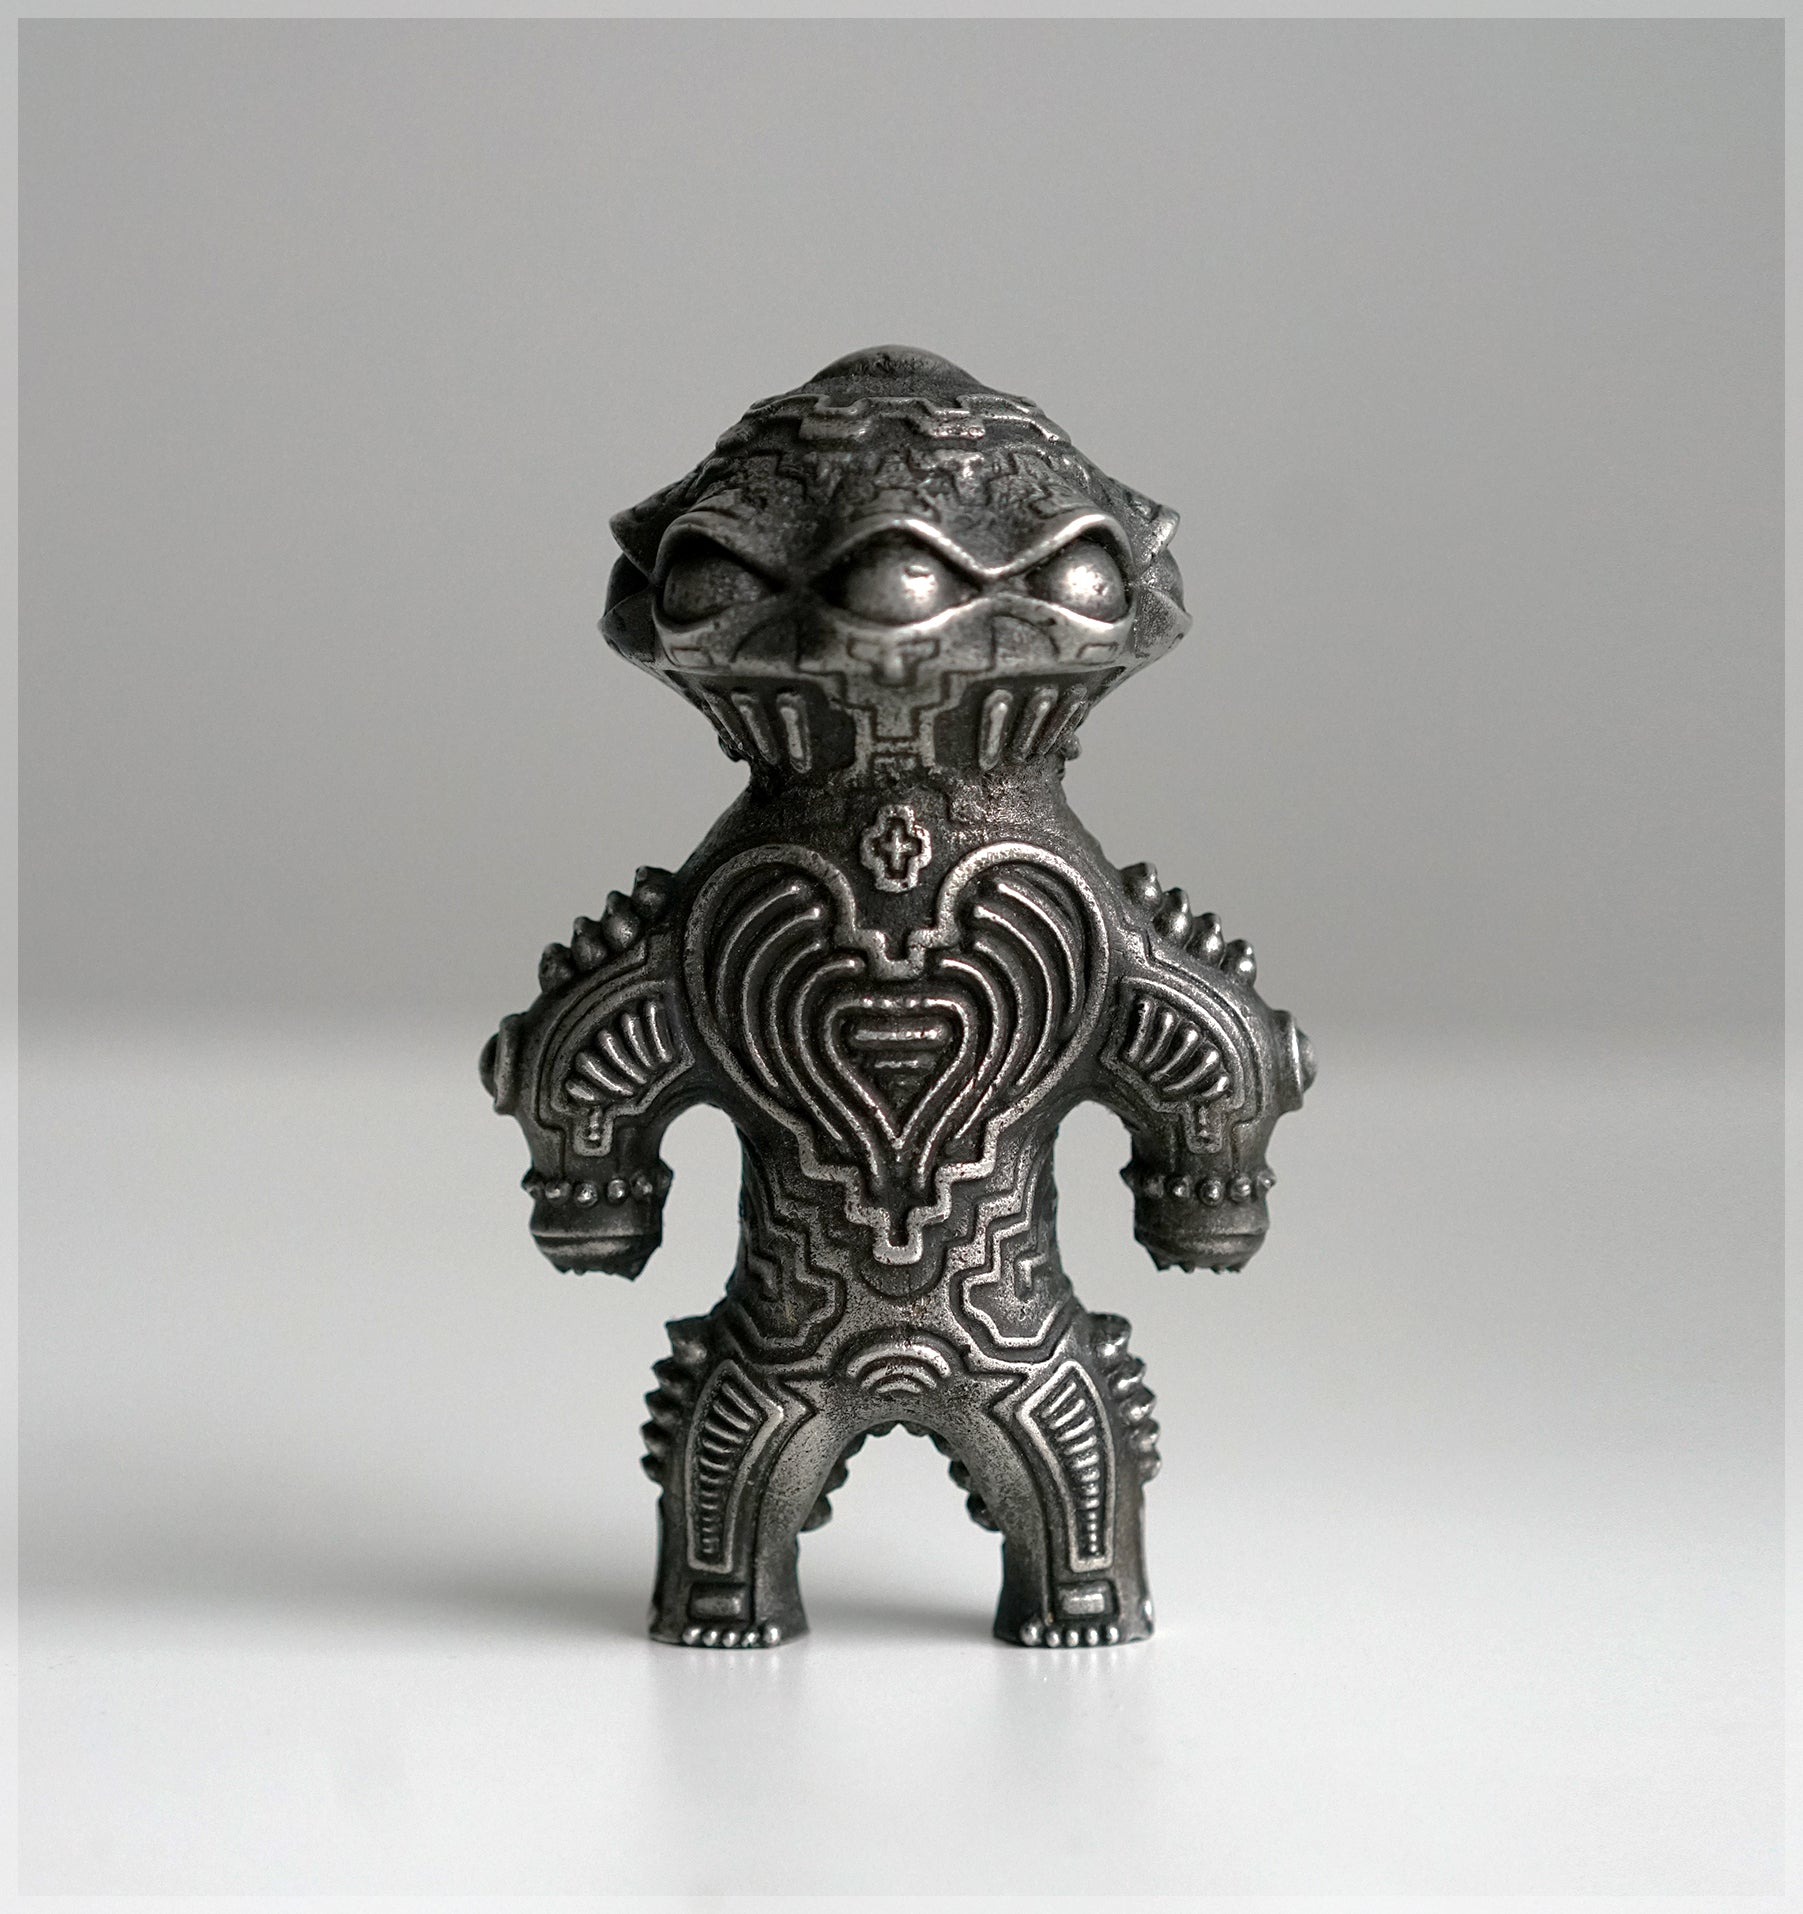 Alien Dogu Sculpture - Pewter Cast by Ben Ridgway